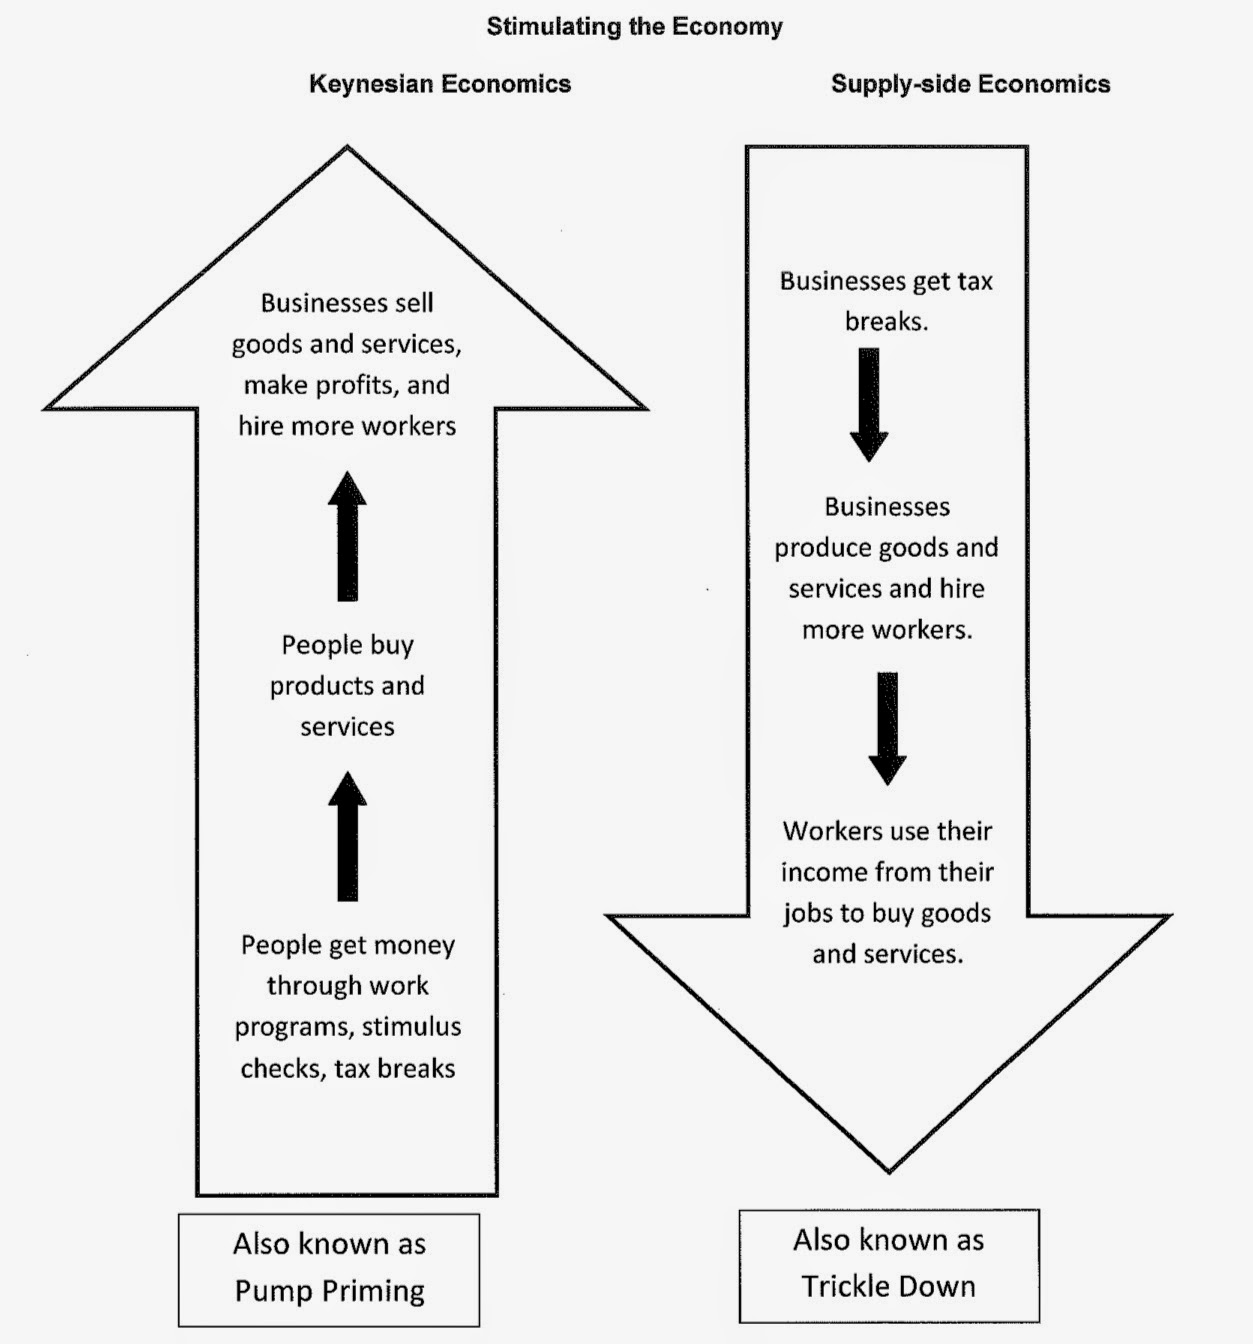 a comparison of the differences between the keynesian economics and supply side economics This is a simplification of what supply-side economics was all about, and it threatens to undermine the enormous gains that have been made in economic theory and policy over the last 30 years.